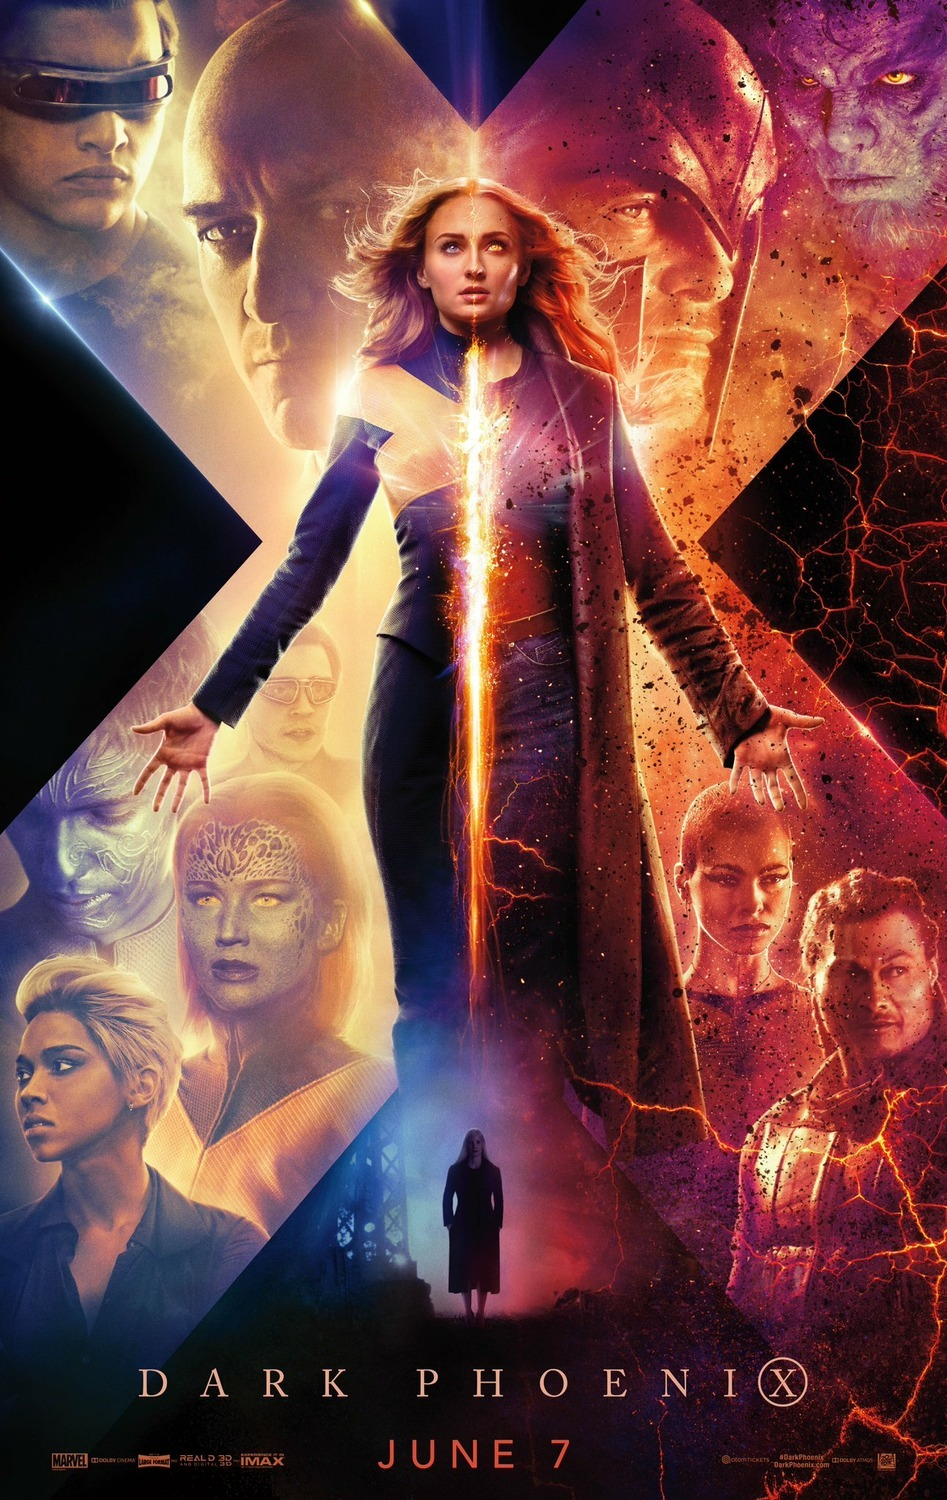 This is the story of one of the X-Men's most beloved character as she evolves into the iconic DARK PHOENIX. Wrestling with an increasingly unstable power as well as her own personal demons, Jean Grey spiraling out of control threaten the fabric of just not the X-Men but of our planet. The family of mutants that we've come to know and love must face their most devastating enemy yet – one of their own.